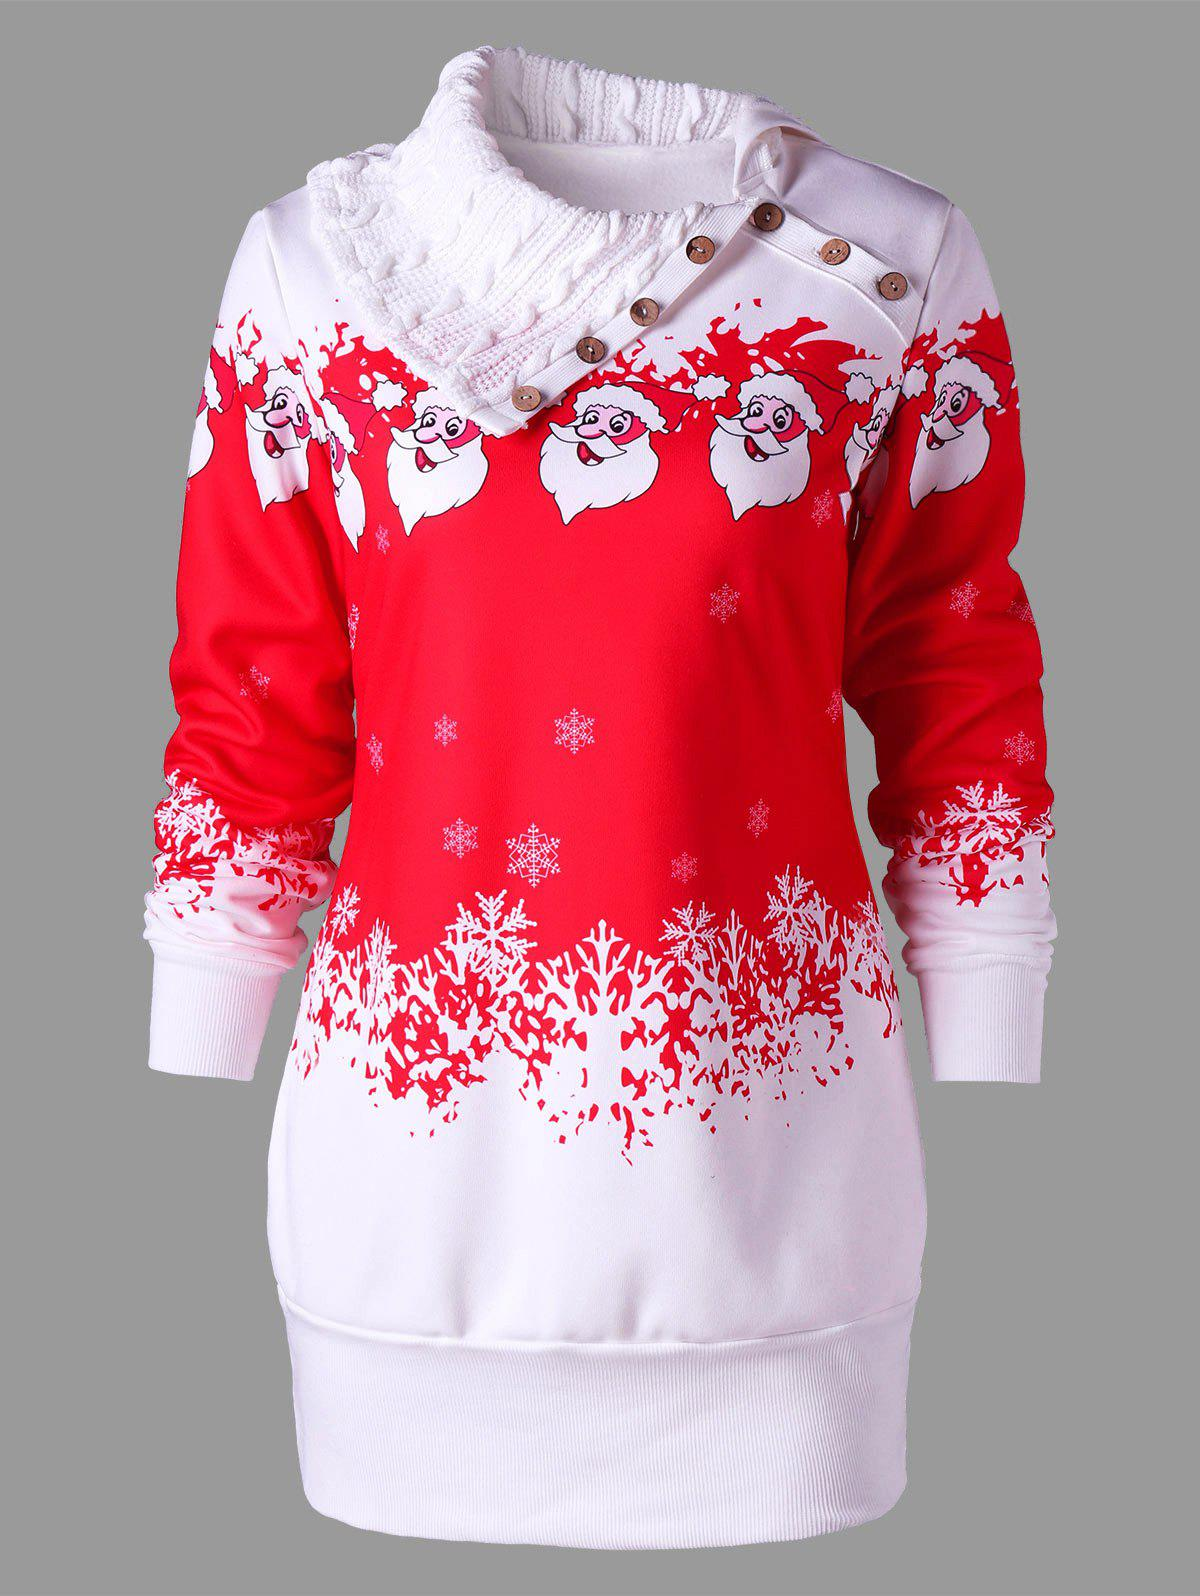 Santa Claus Printed Plus Size Tunic Sweatshirt Dress plus size letter print hooded sweatshirt dress